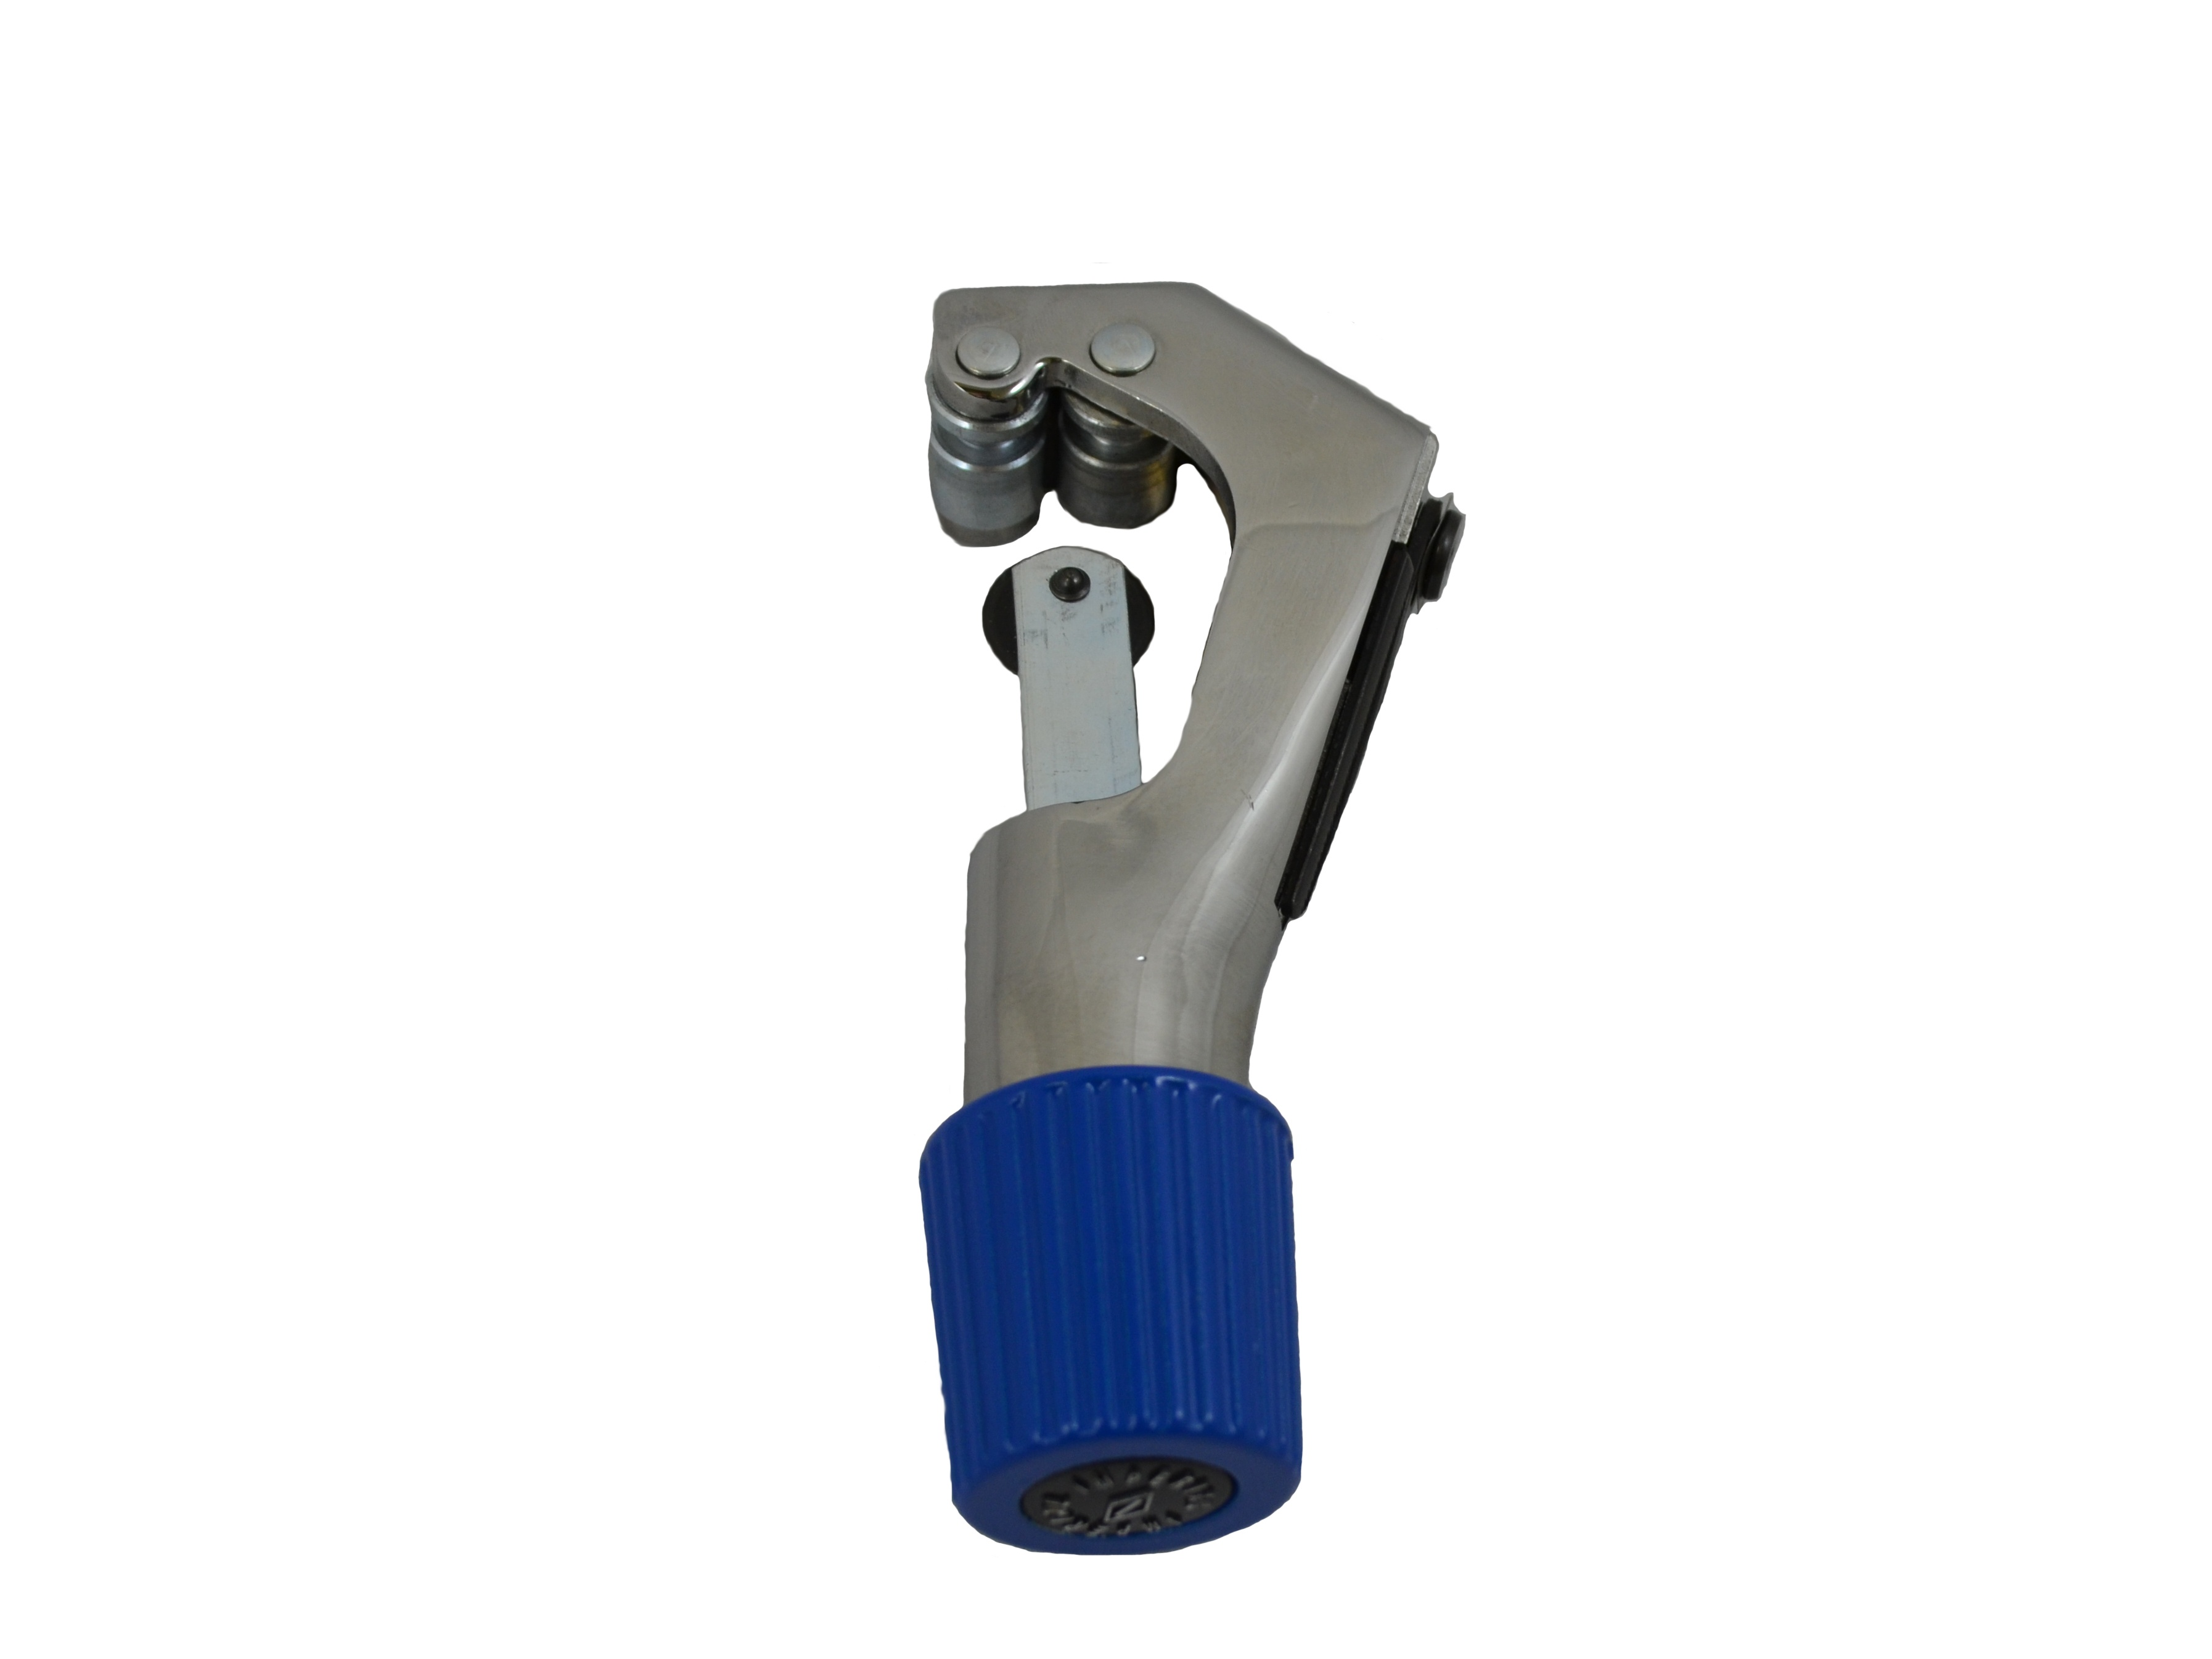 TurnPro Tube Cutter